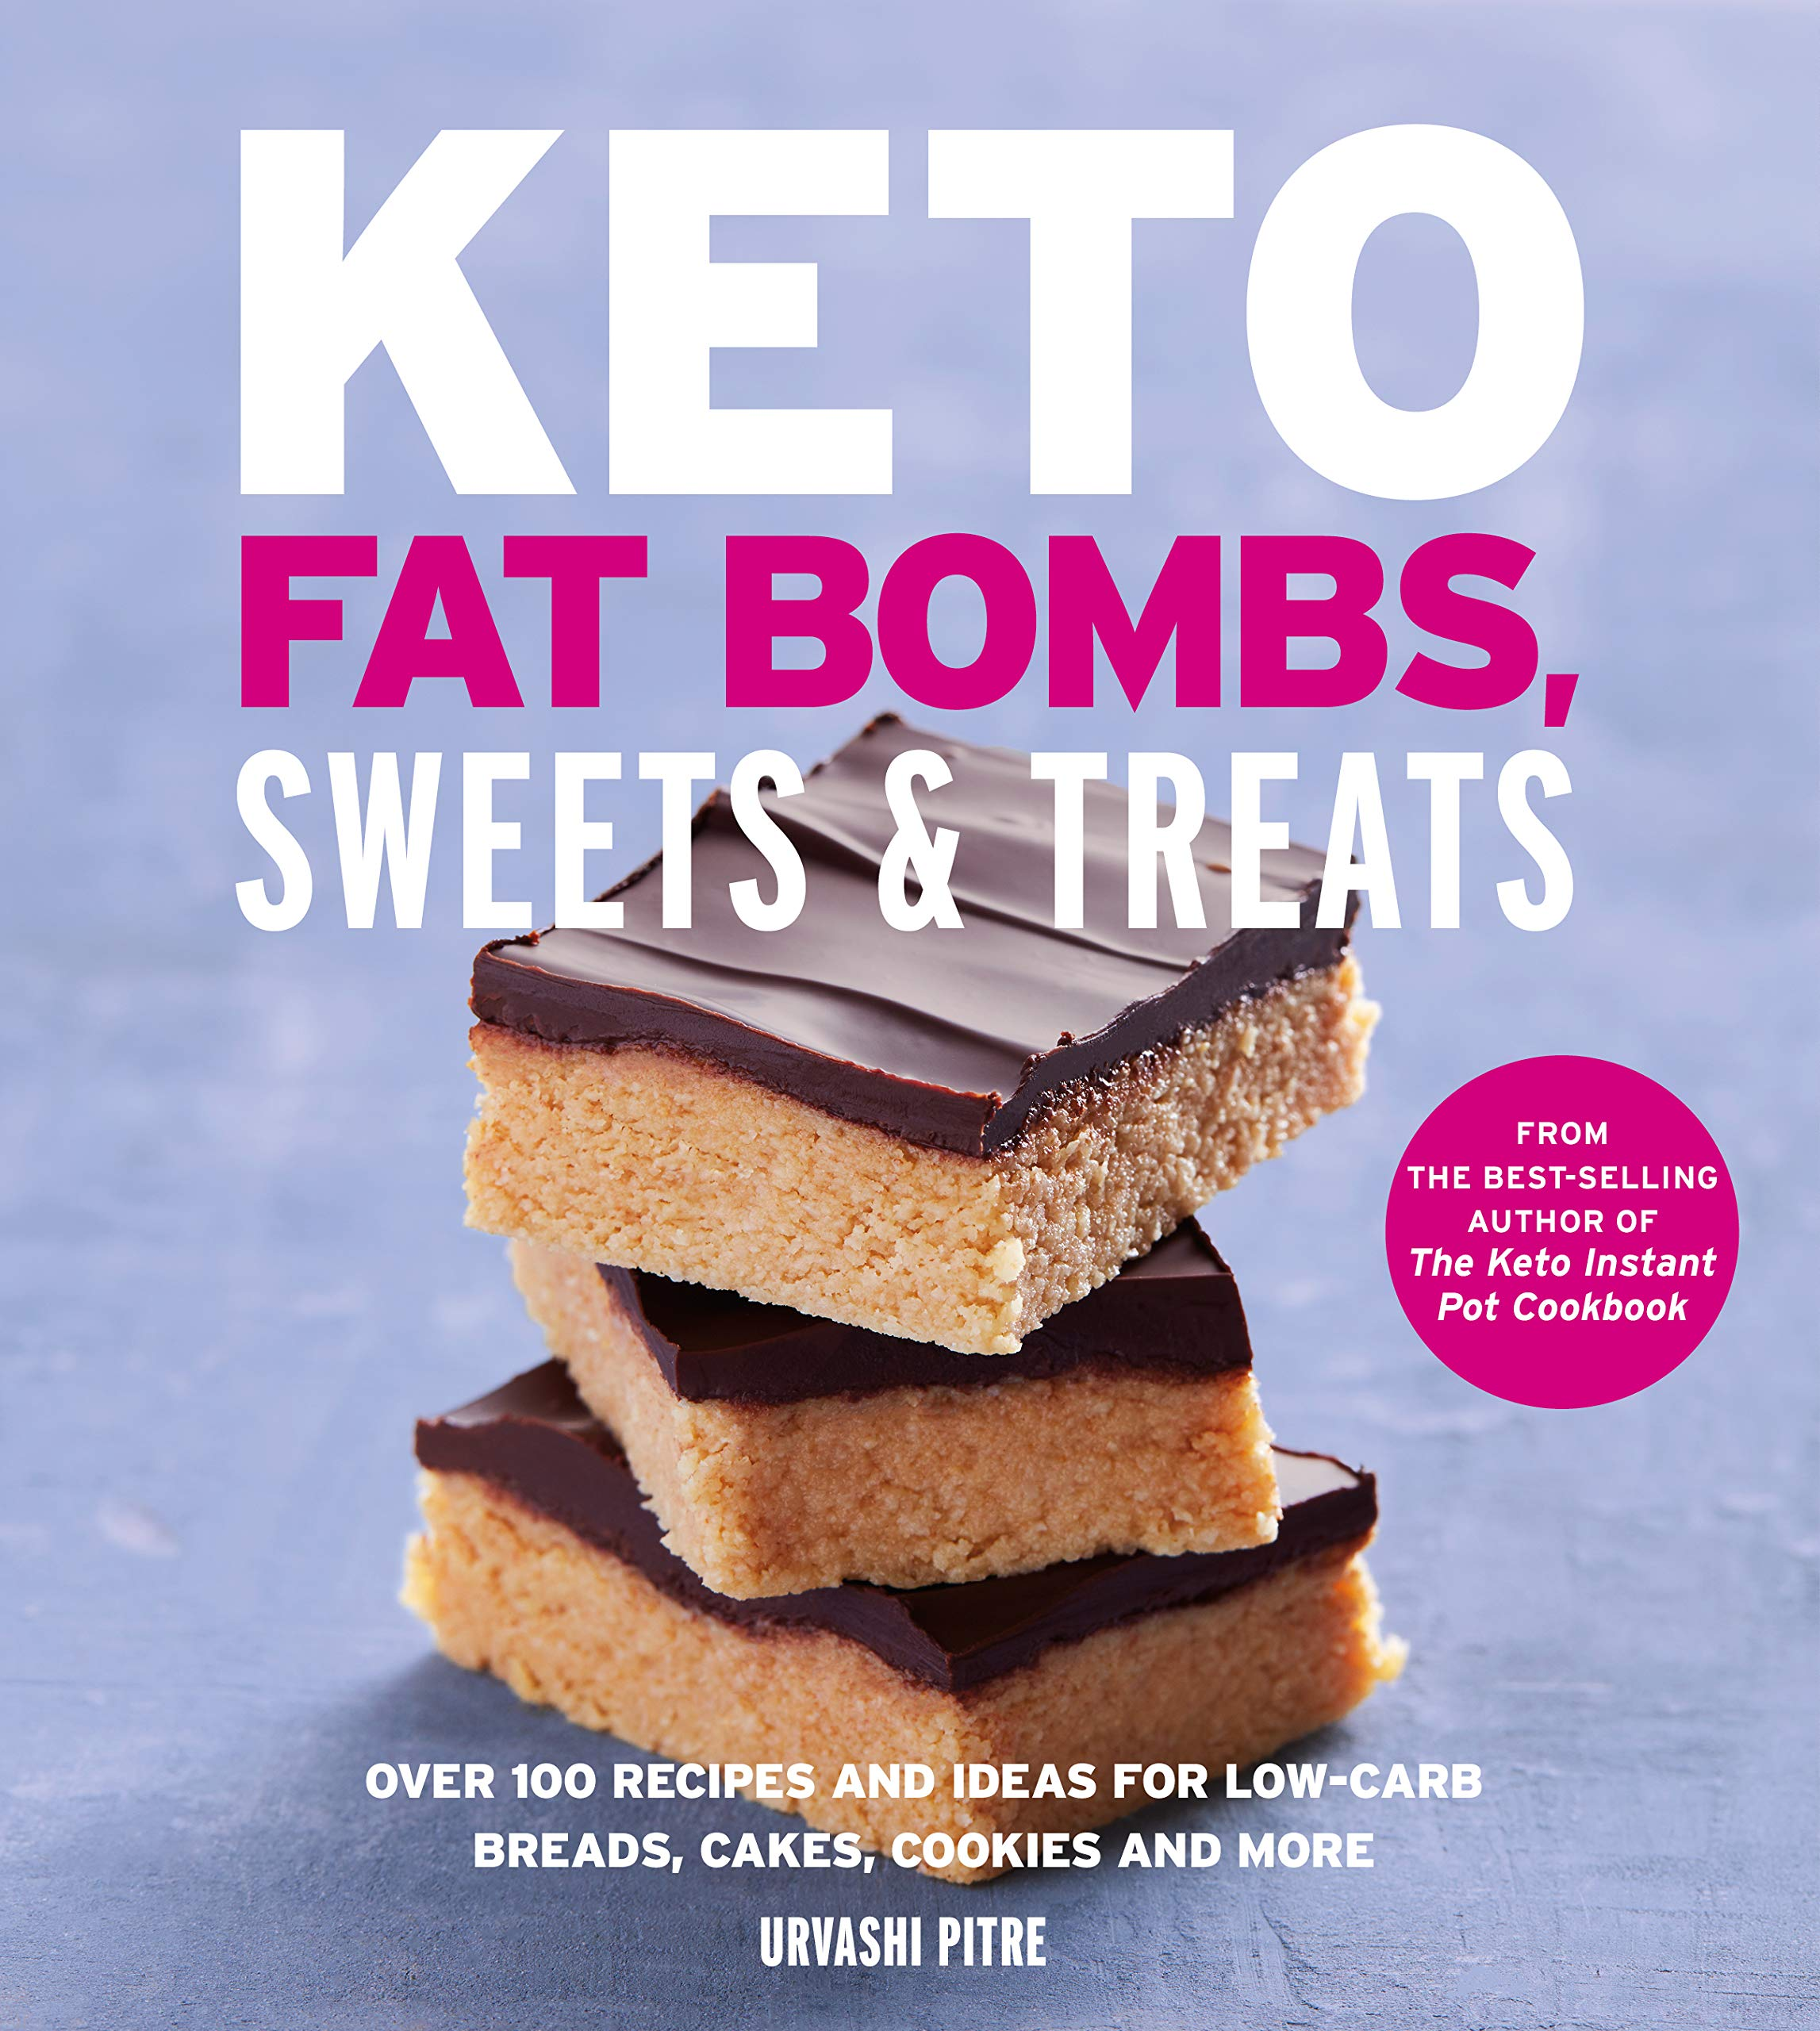 Keto-Friendly Dessert Recipes  Warranty Questions